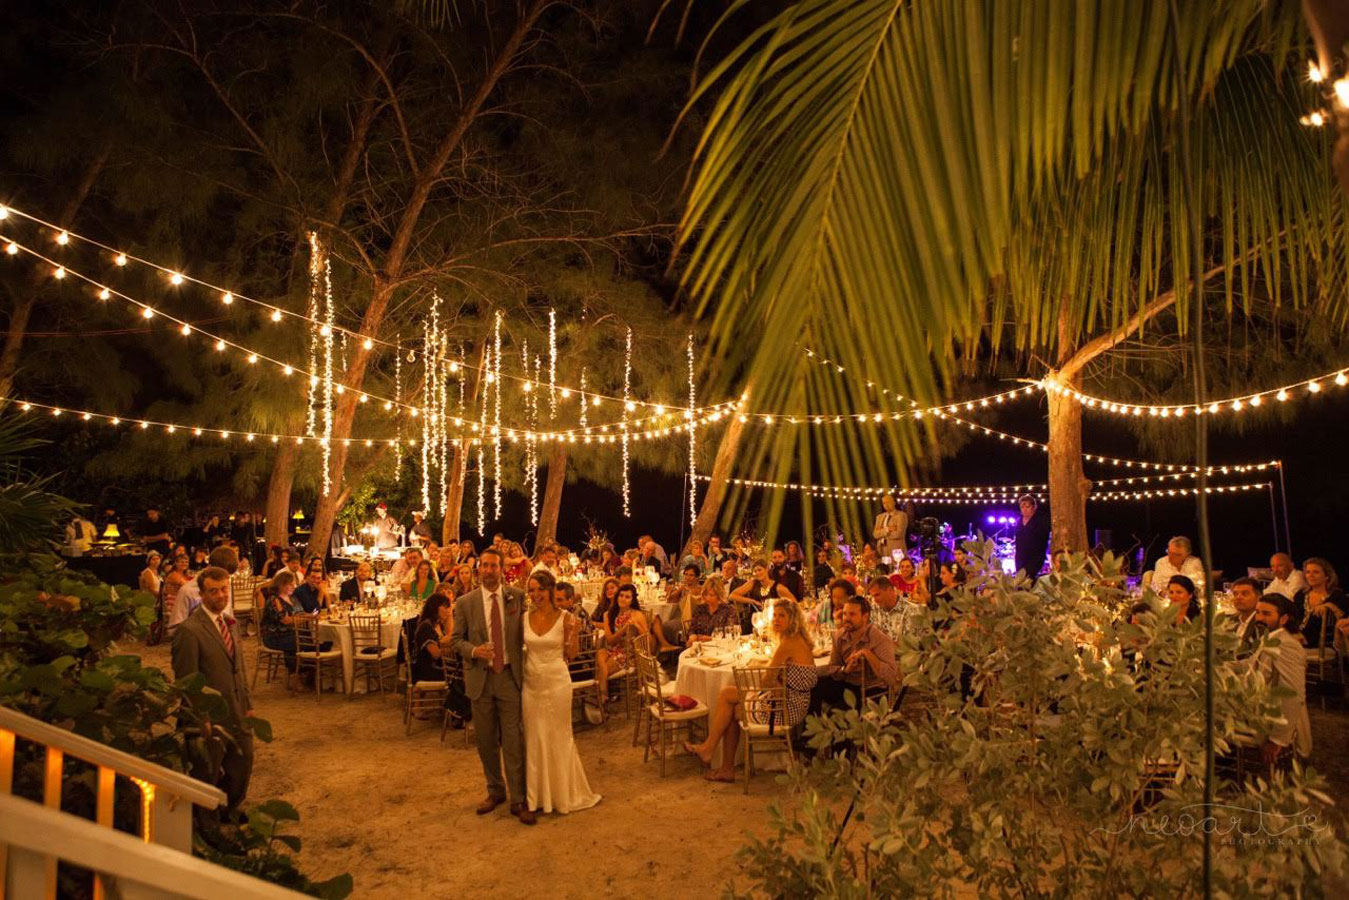 Photo of a wedding reception on a beach at nighttime.